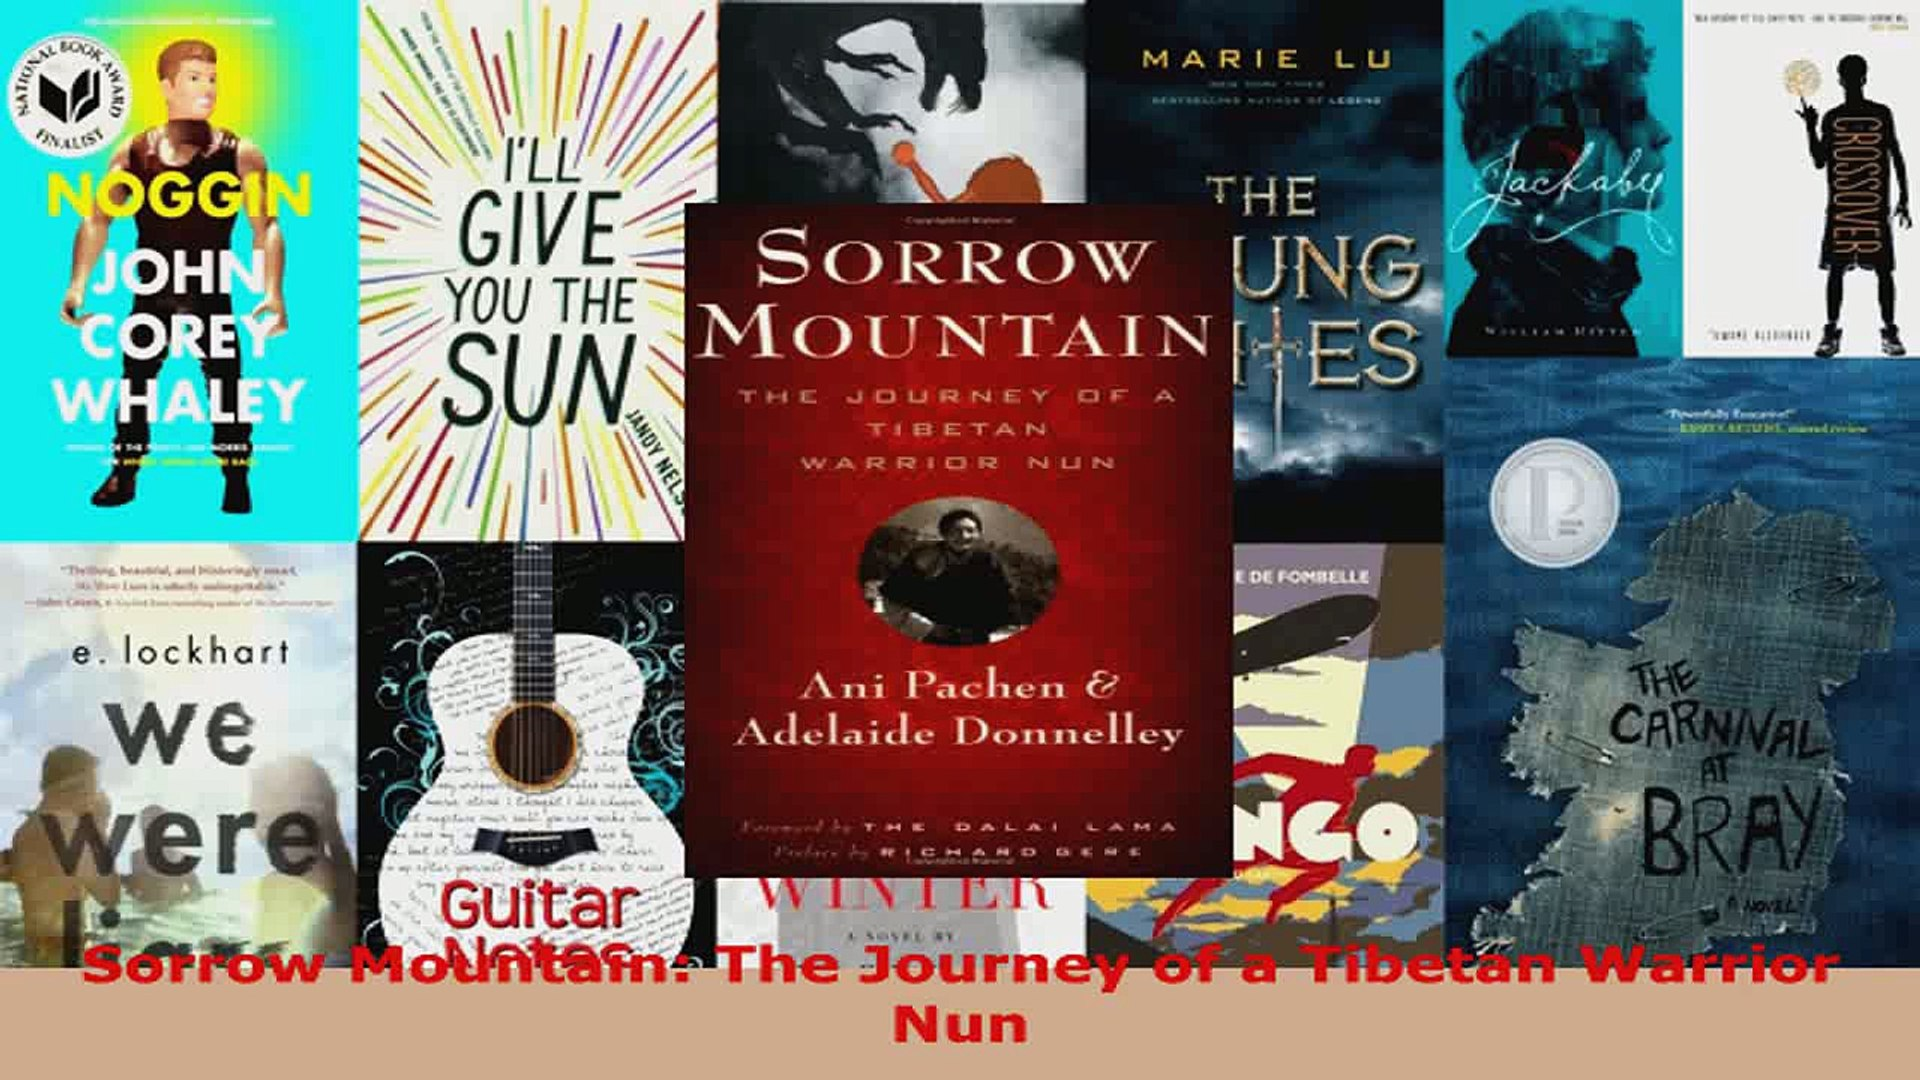 Read  Sorrow Mountain The Journey of a Tibetan Warrior Nun Ebook Free